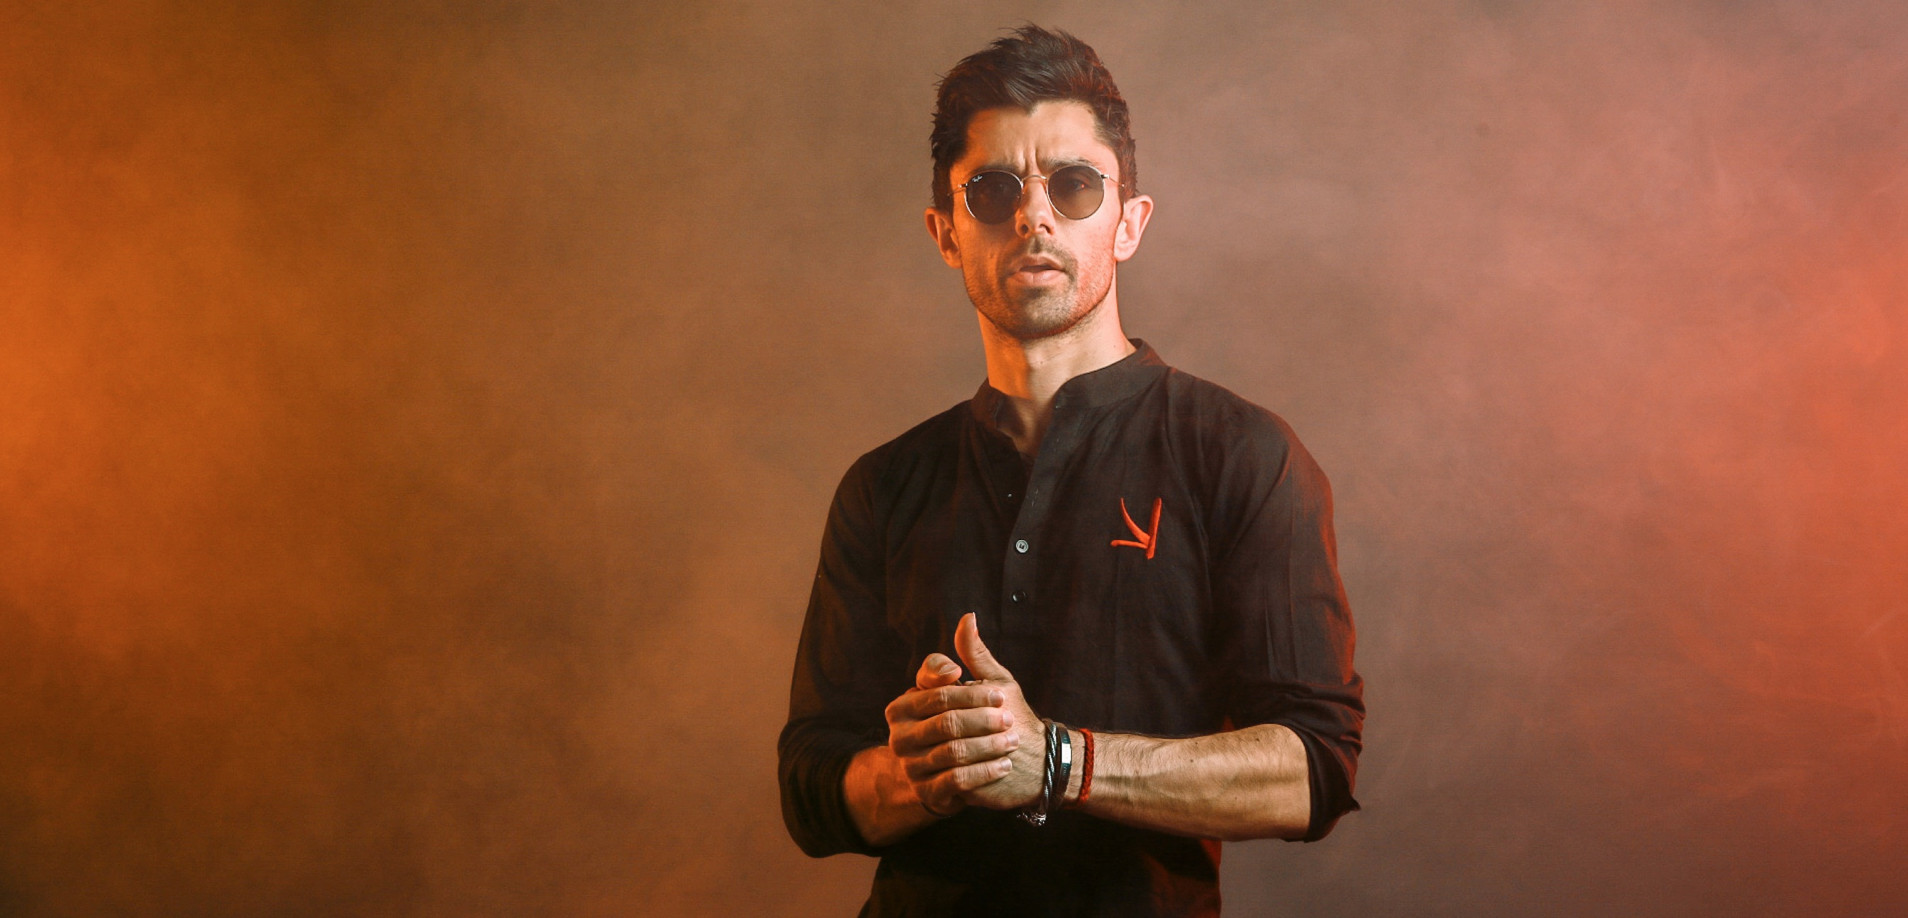 Listen to KSHMR's guest mix at Spinnin' Sessions